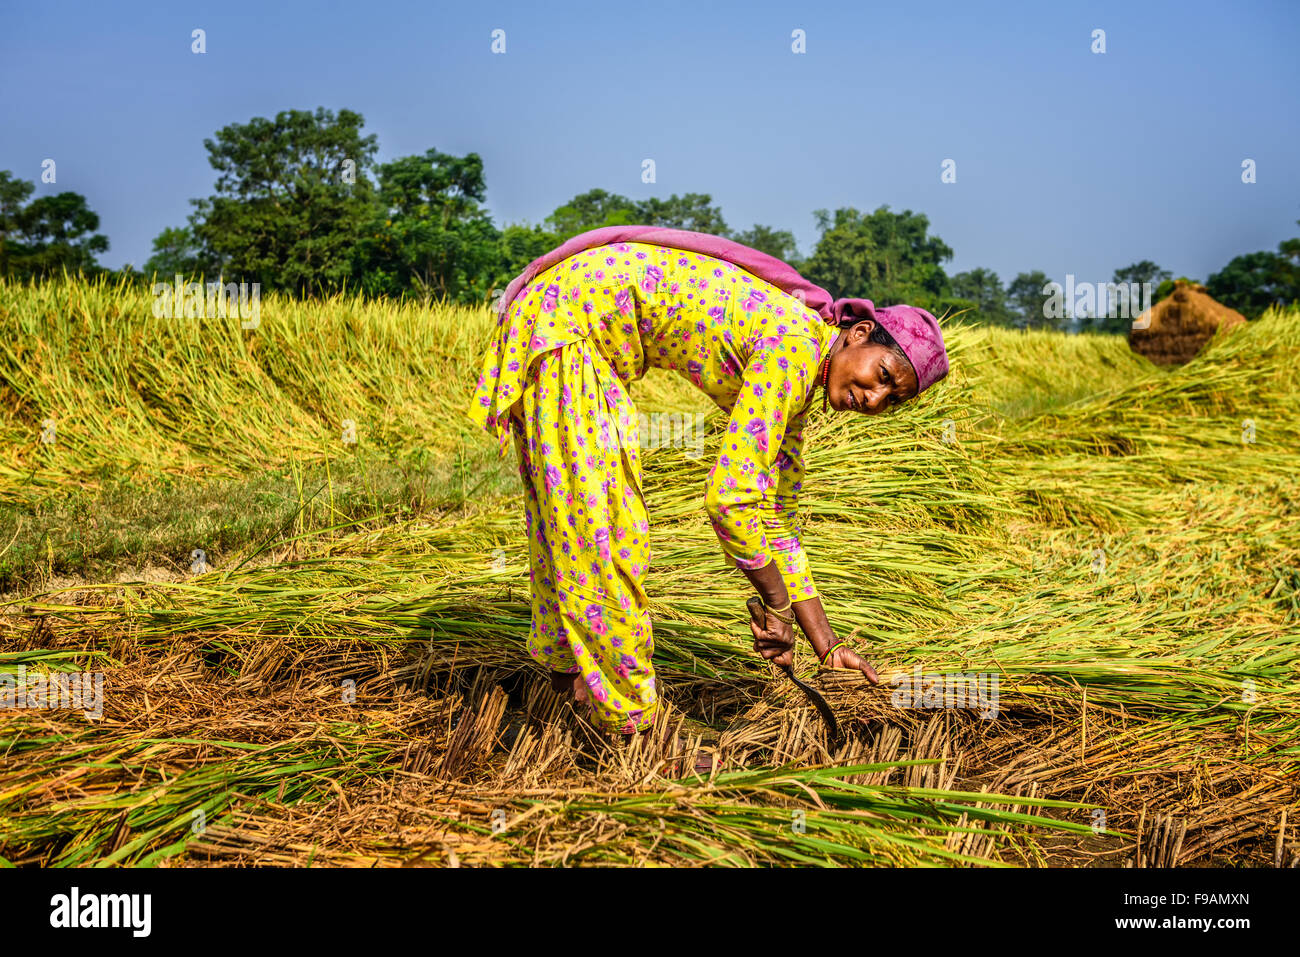 Nepalese woman working in a rice field at sunrise - Stock Image